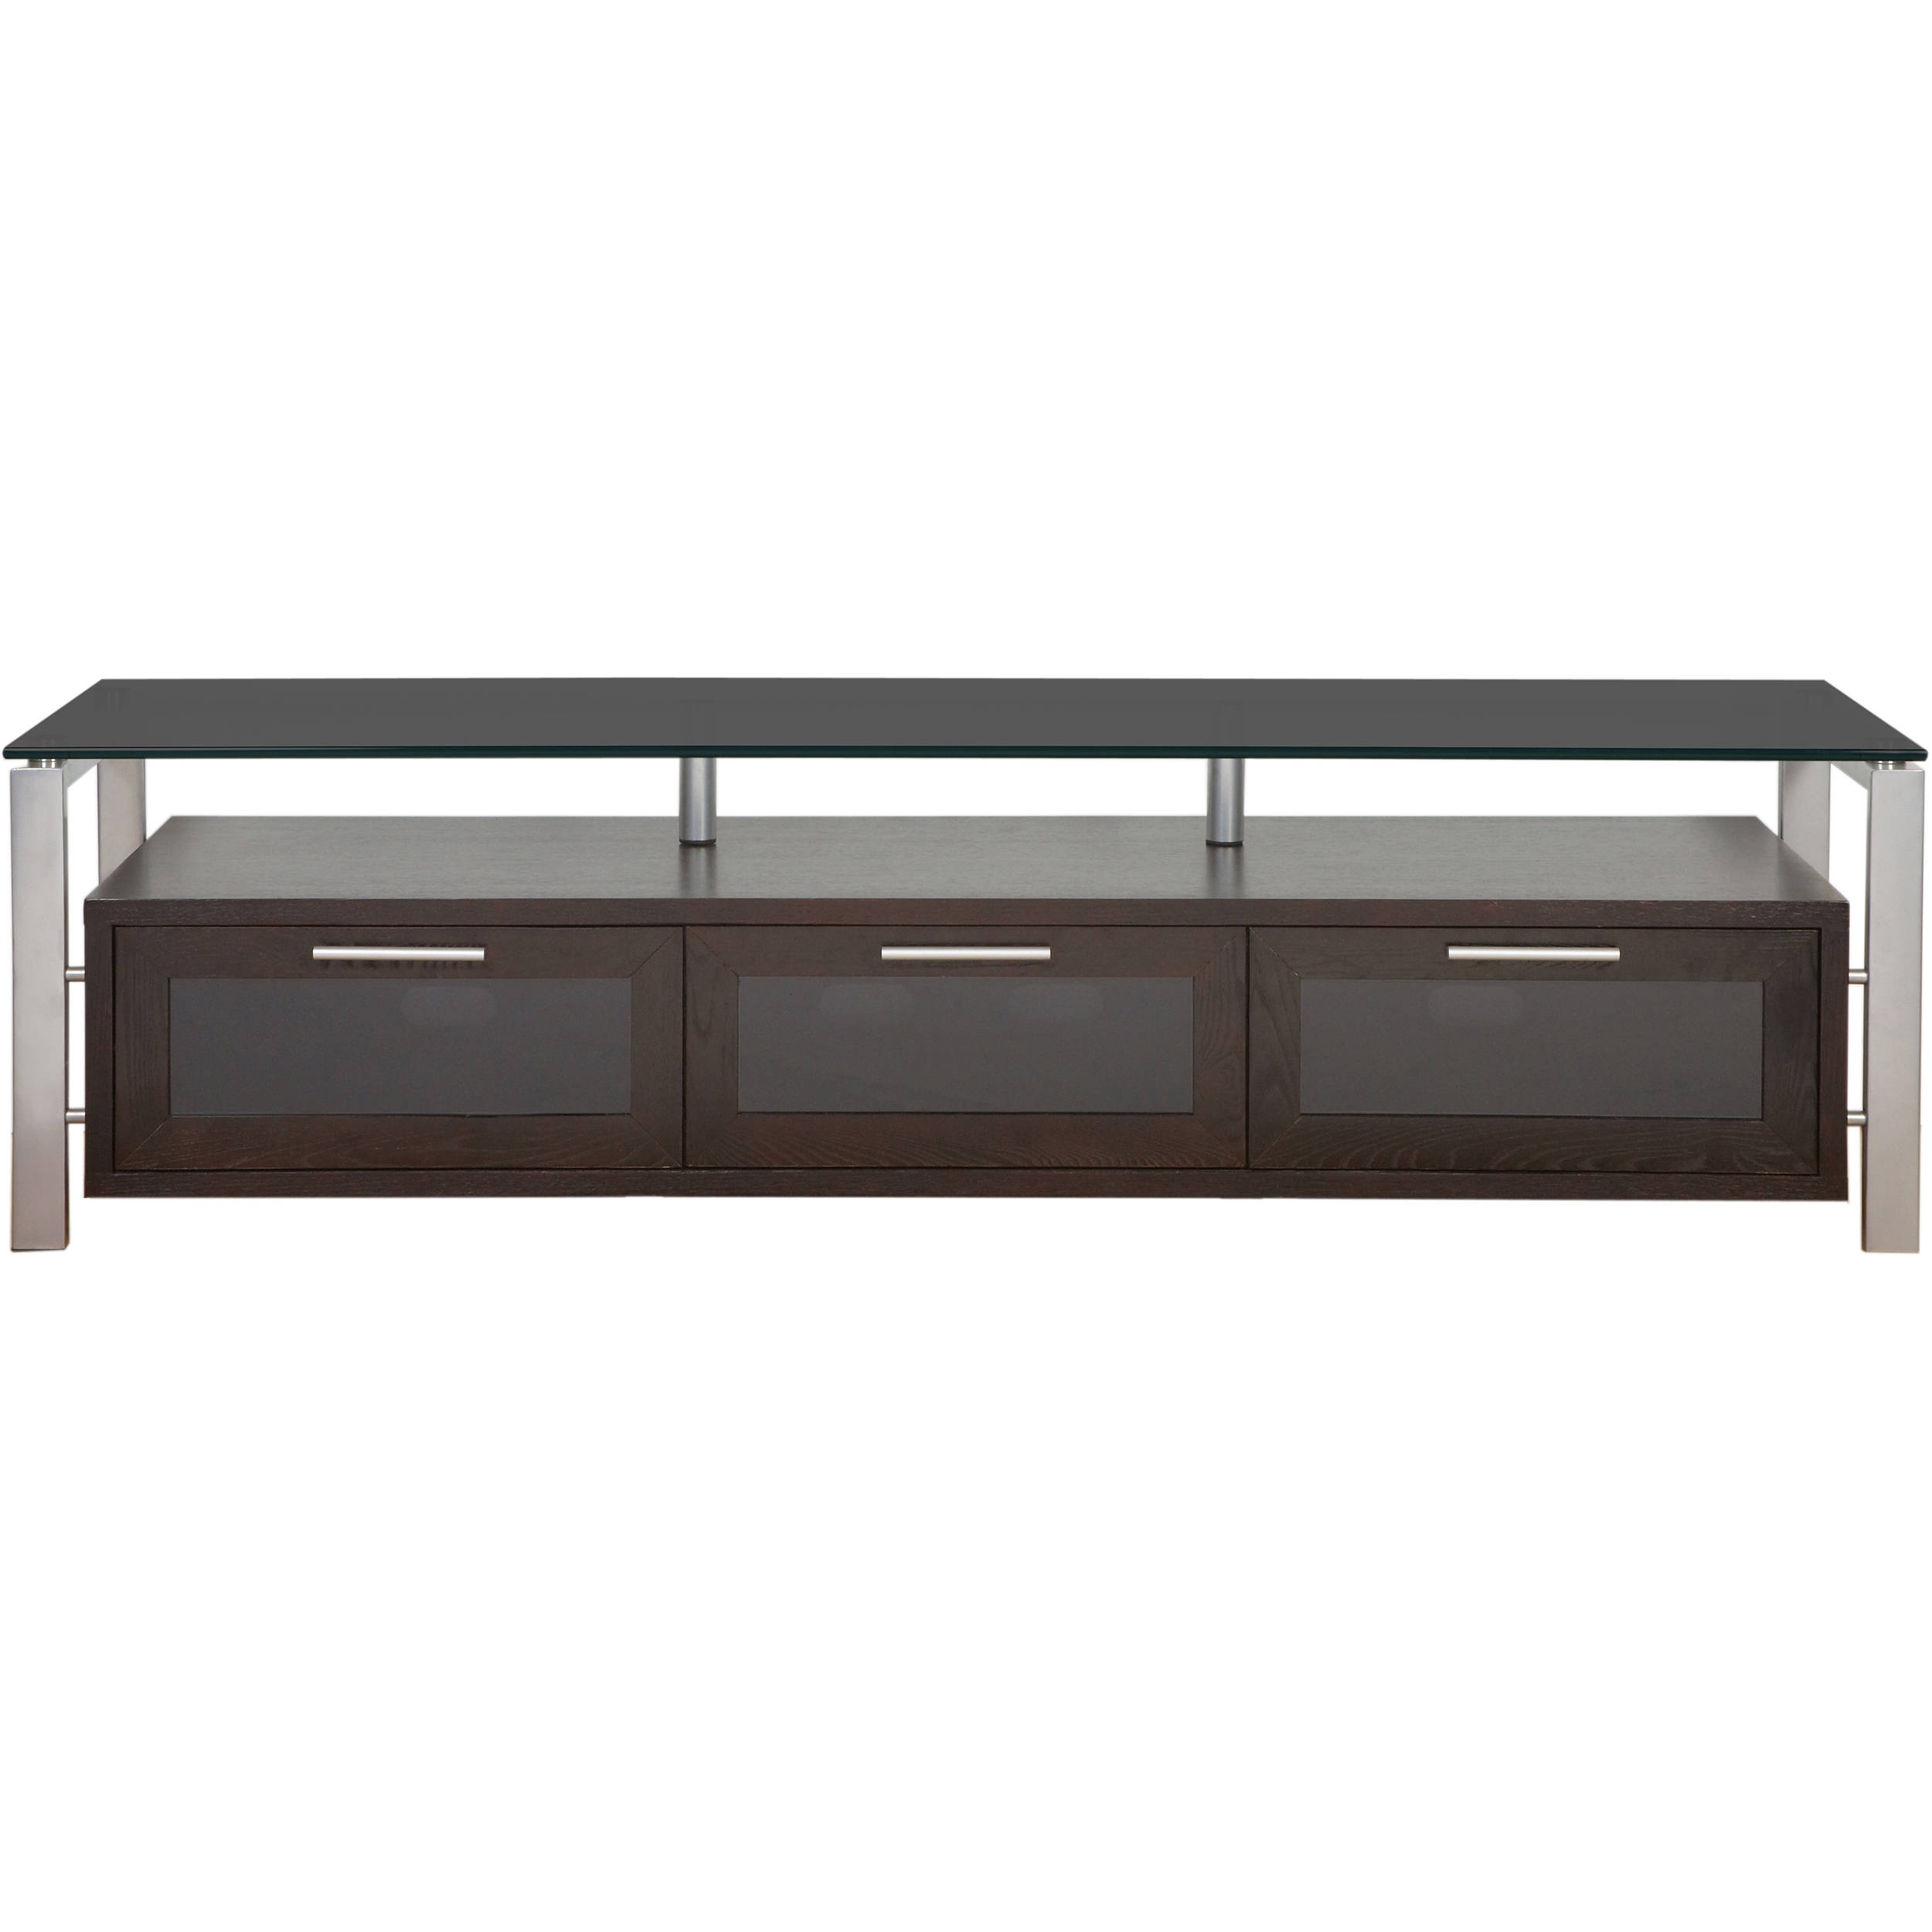 PLATEAU Decor 71 TV Stand (Espresso Finish, Silver Legs, Black Glass)